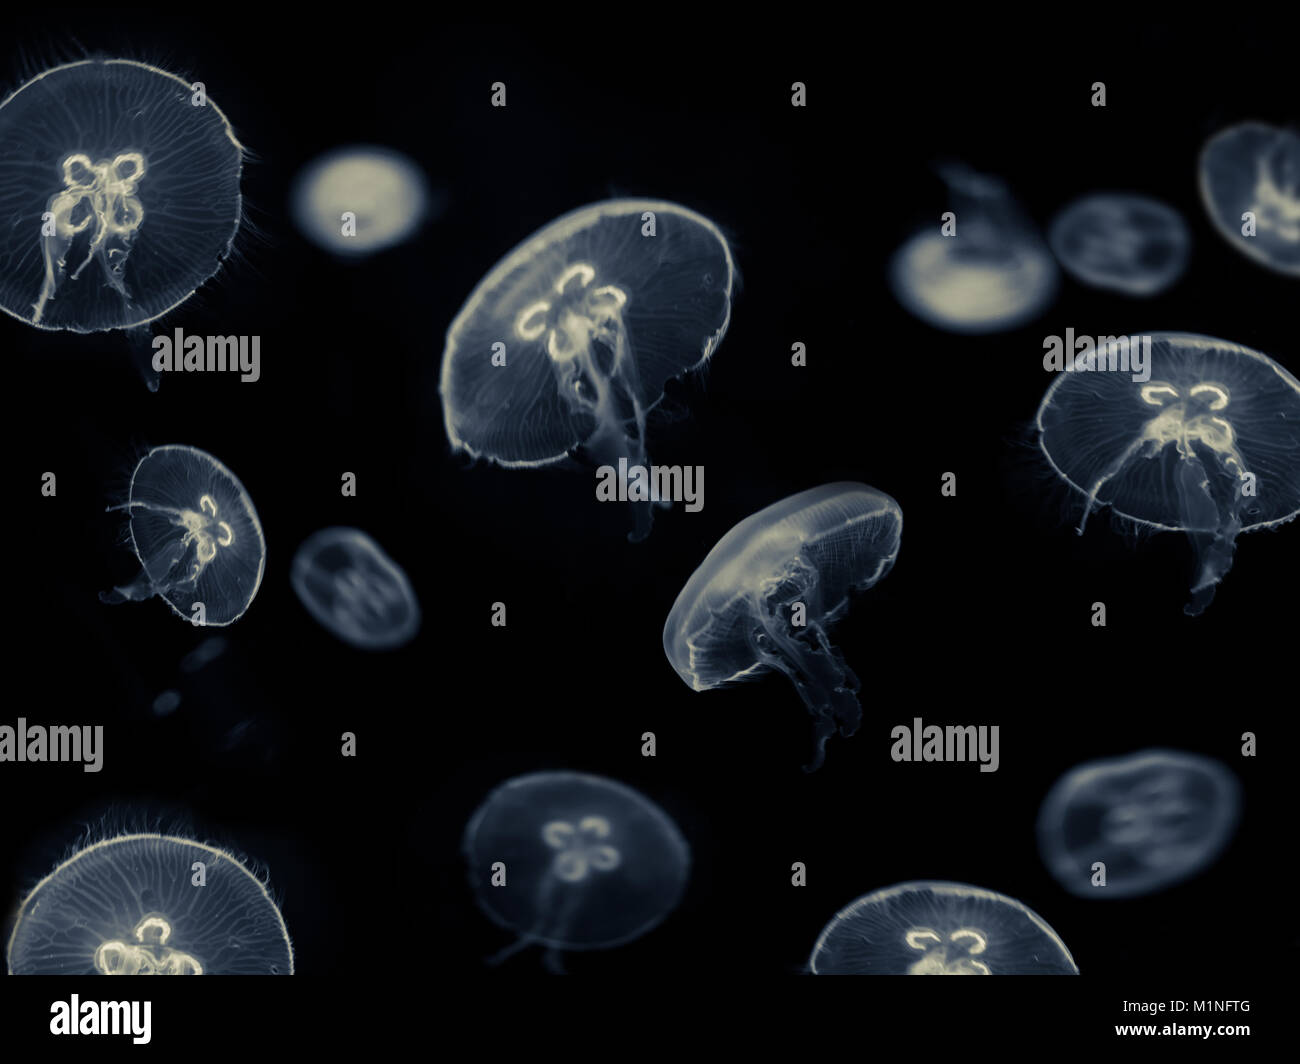 many white jellyfish on black background - jellyfish - Stock Image